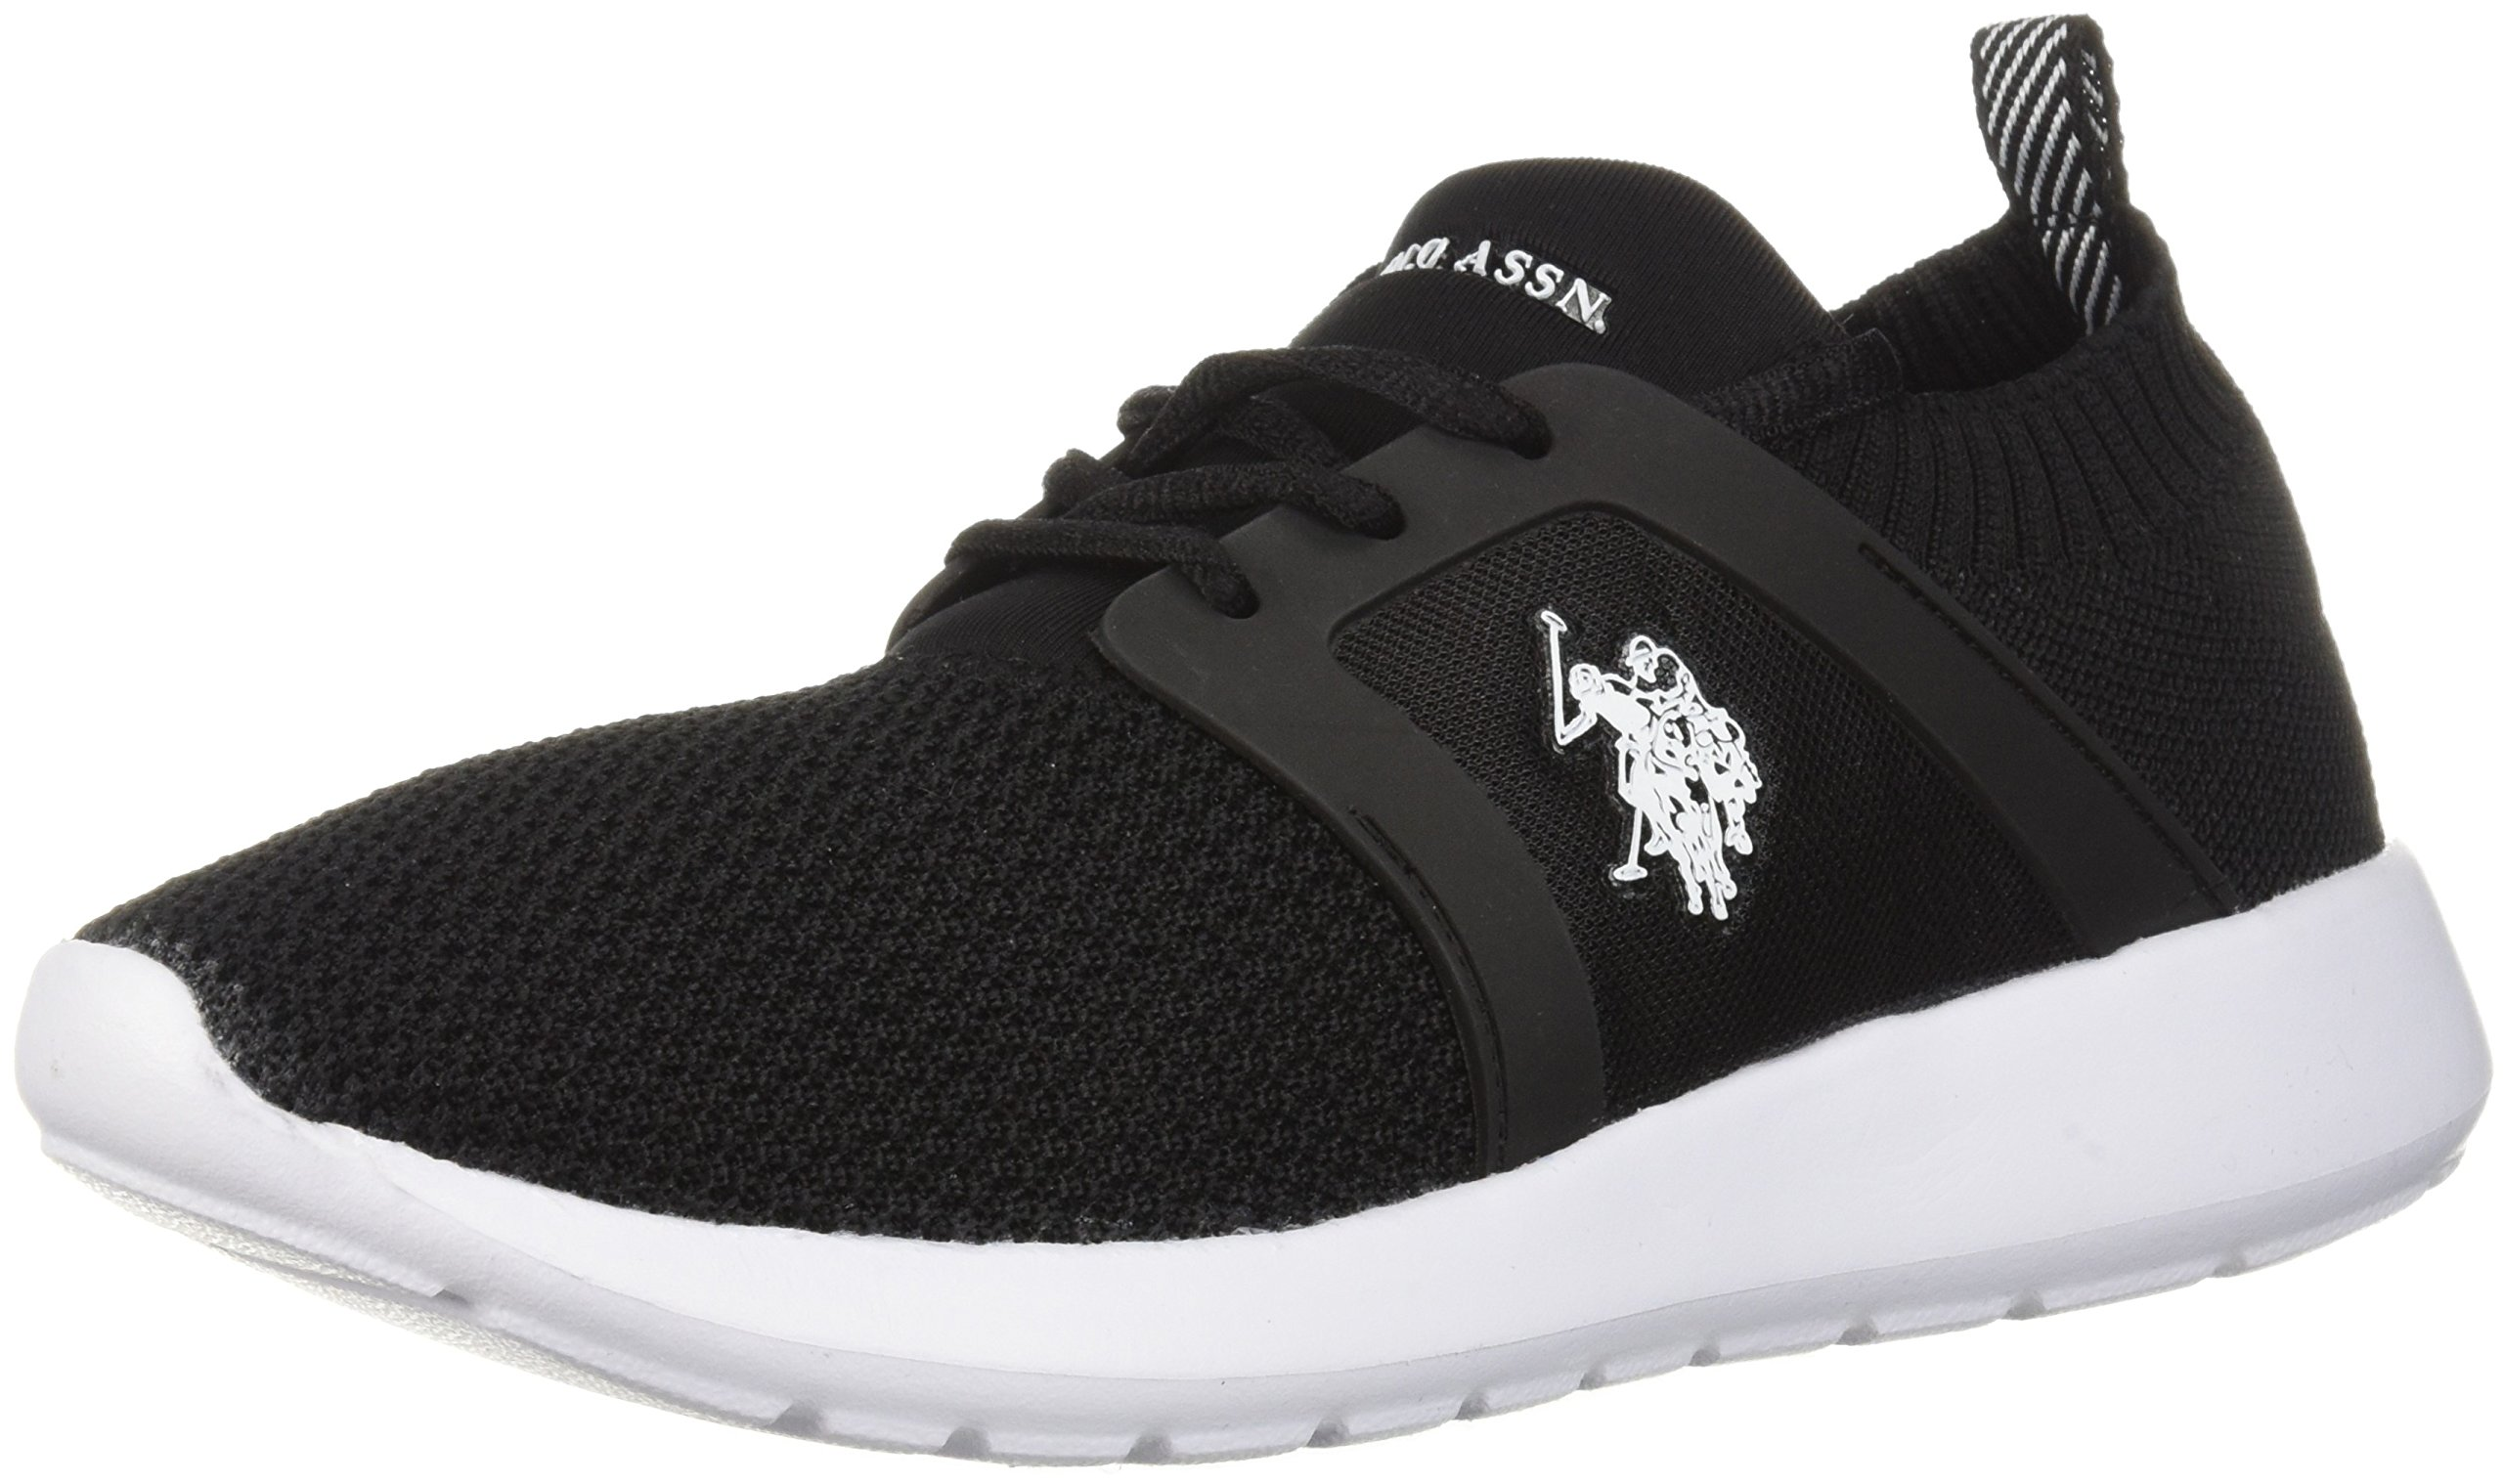 U.S. Polo Assn. Women's Women's Aeris-K9 Oxford, Black, 8 Medium US